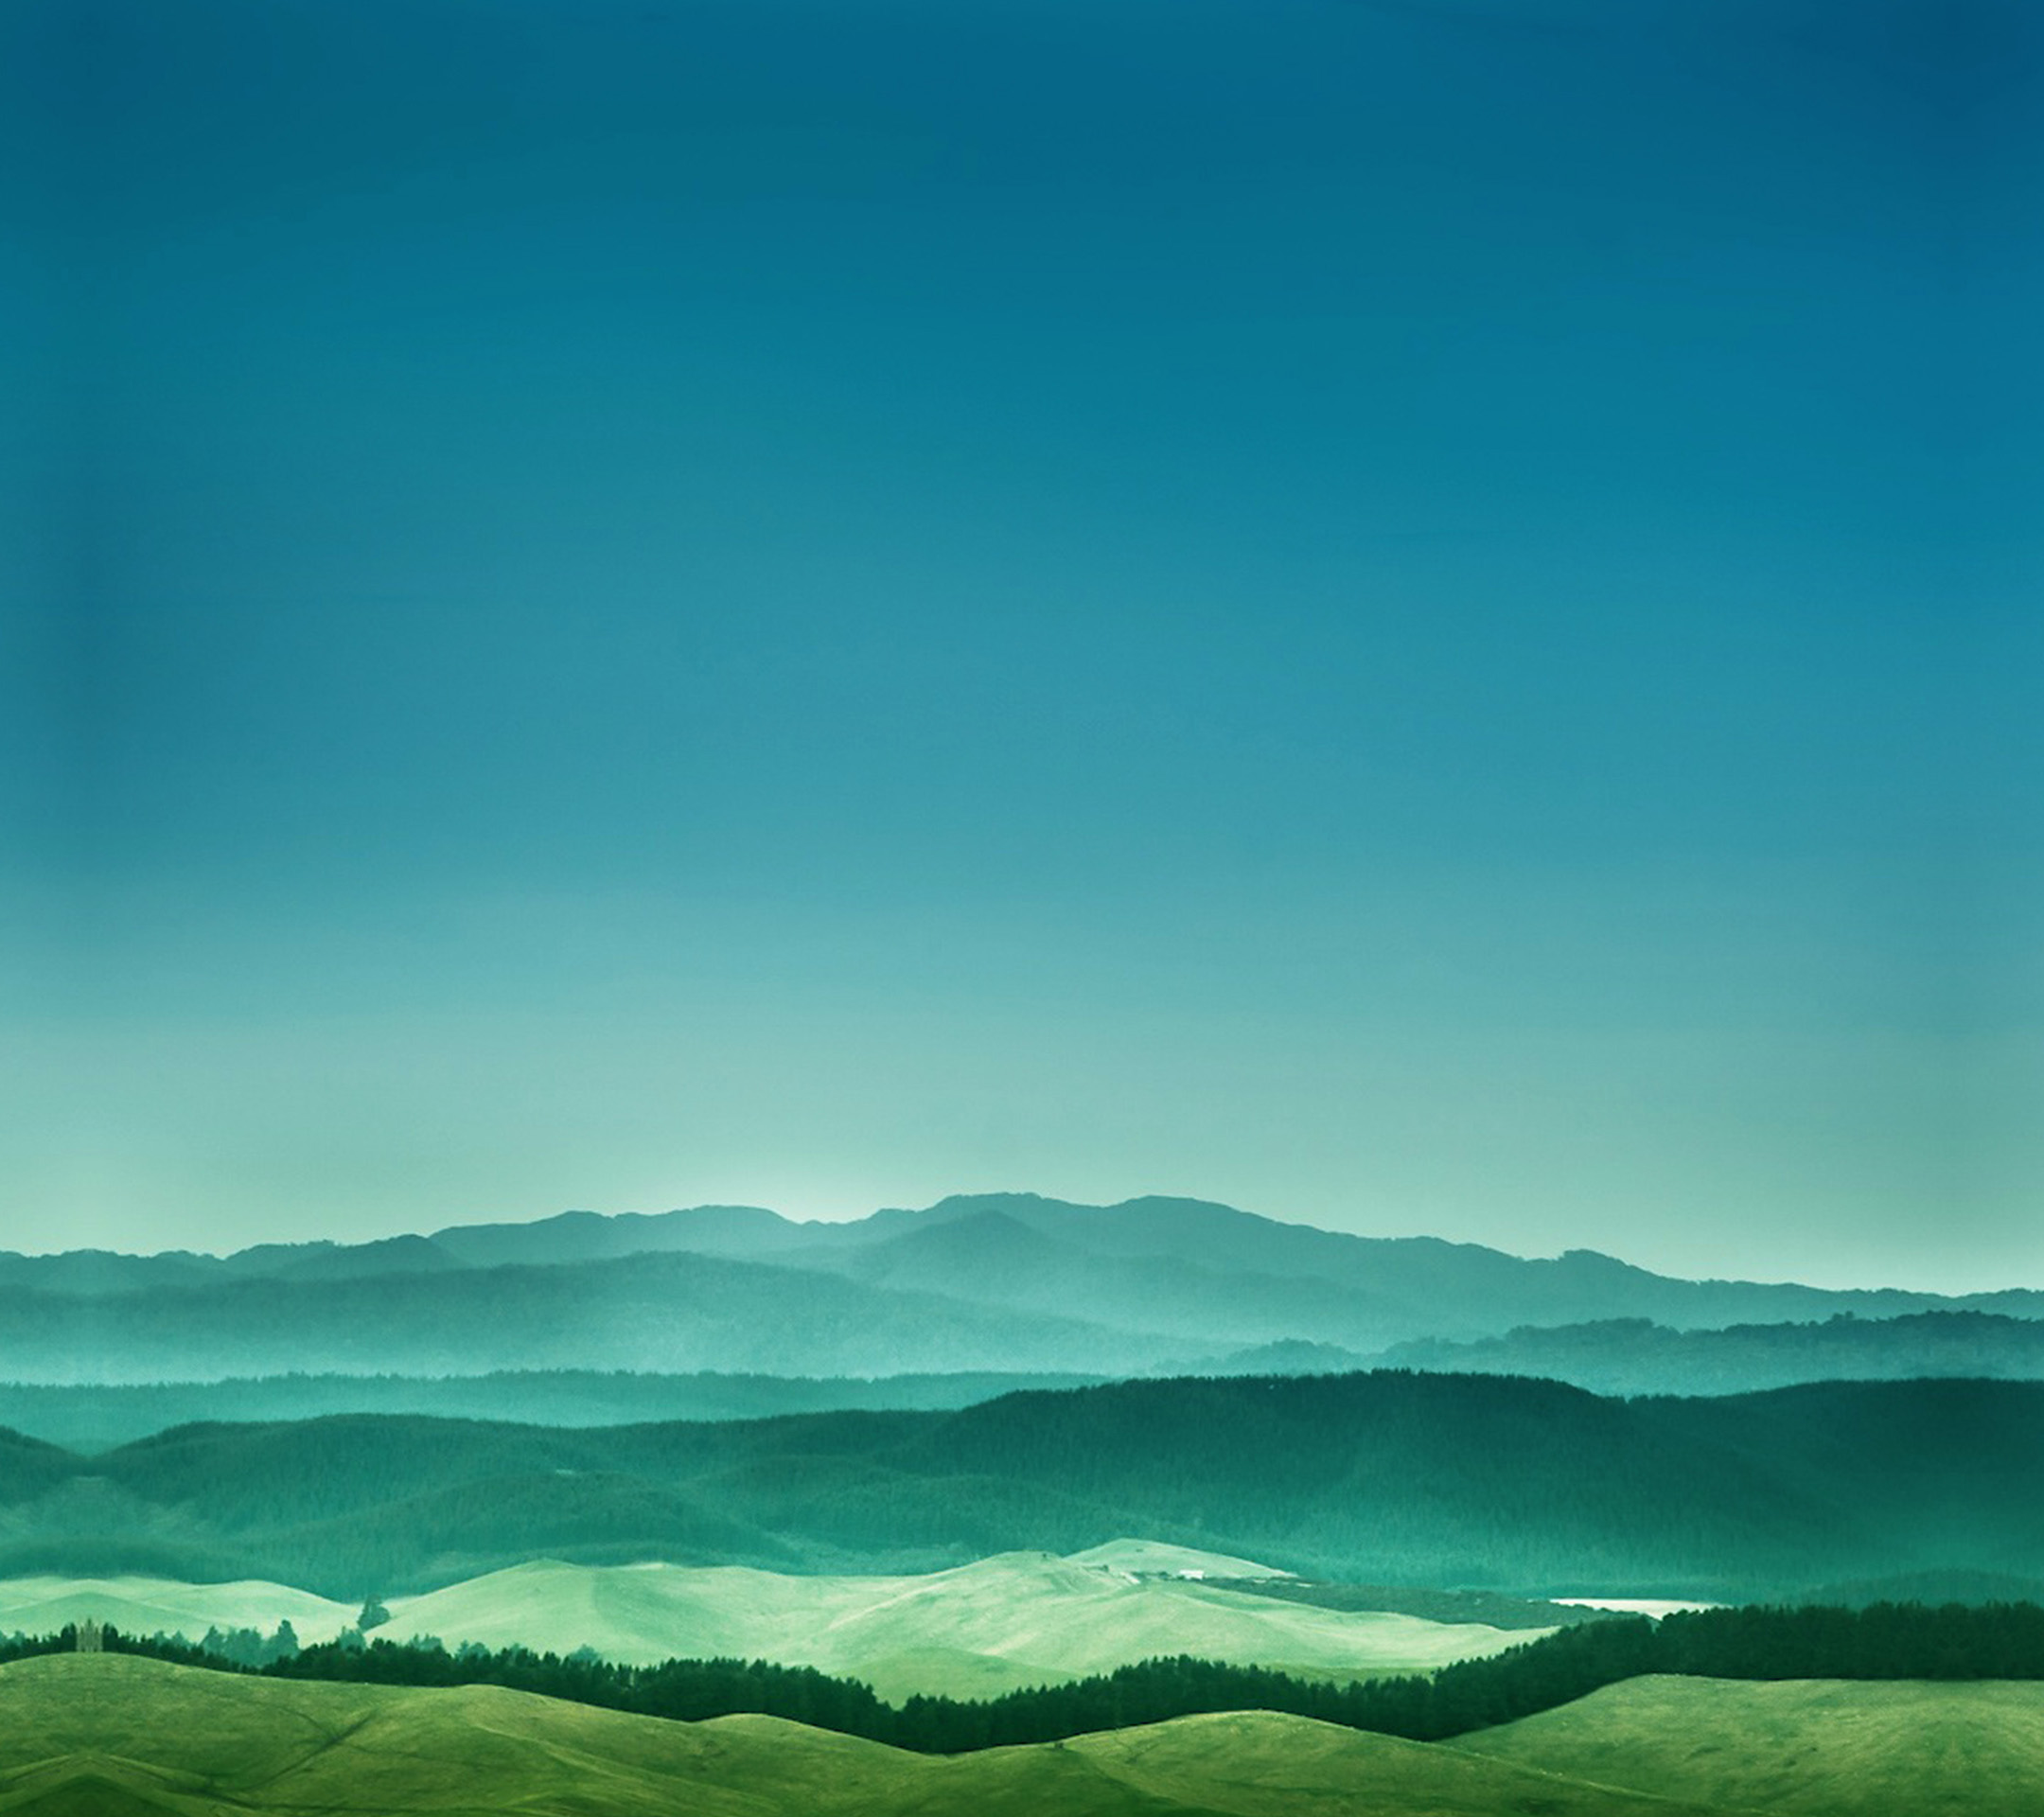 Htc One M8 Stock Wallpapers